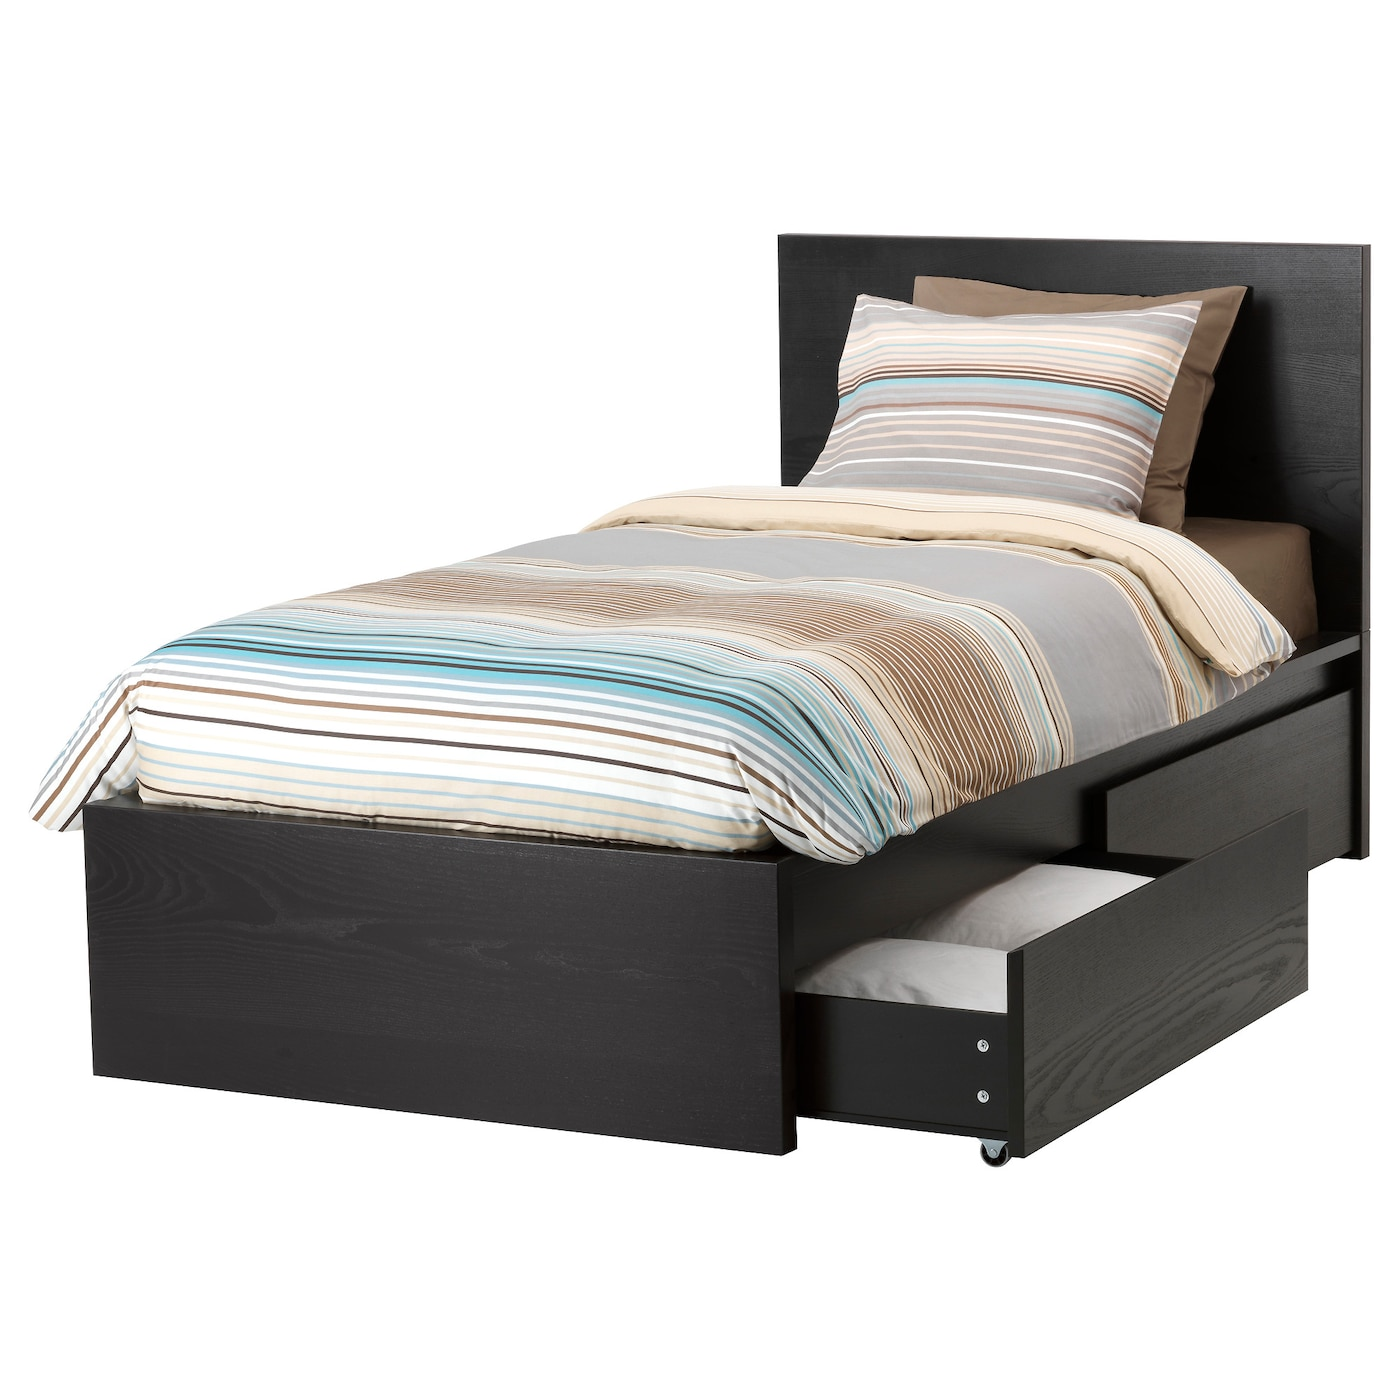 malm bed frame high w  storage boxes blackbrownluröy standard  - ikea malm bed frame high w  storage boxes real wood veneer will make